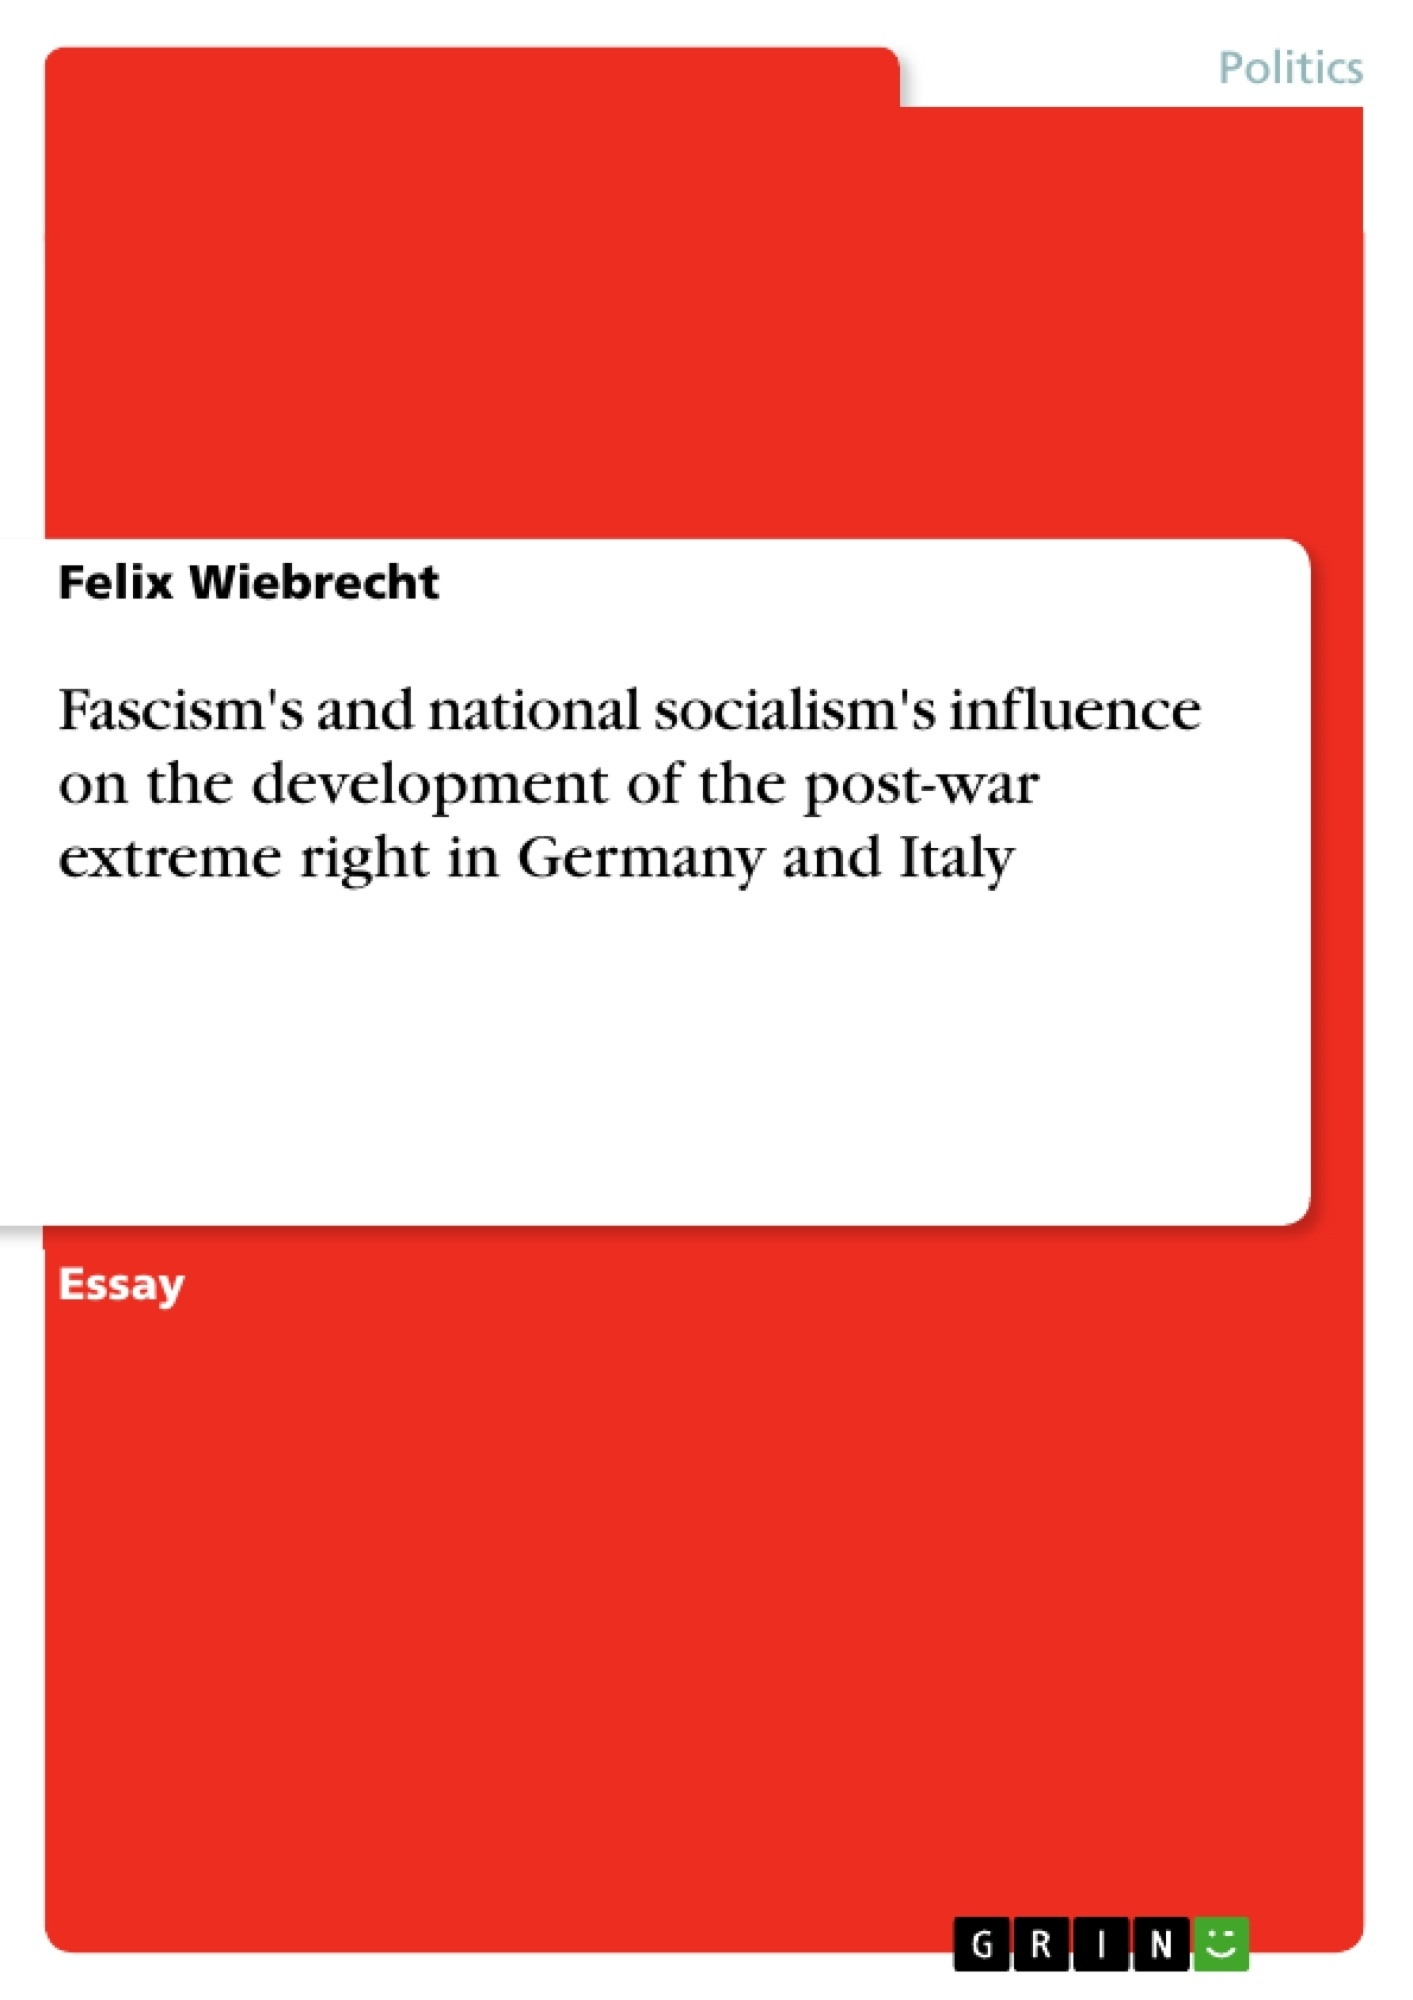 Title: Fascism's and national socialism's influence on the development of the post-war extreme right in Germany and Italy